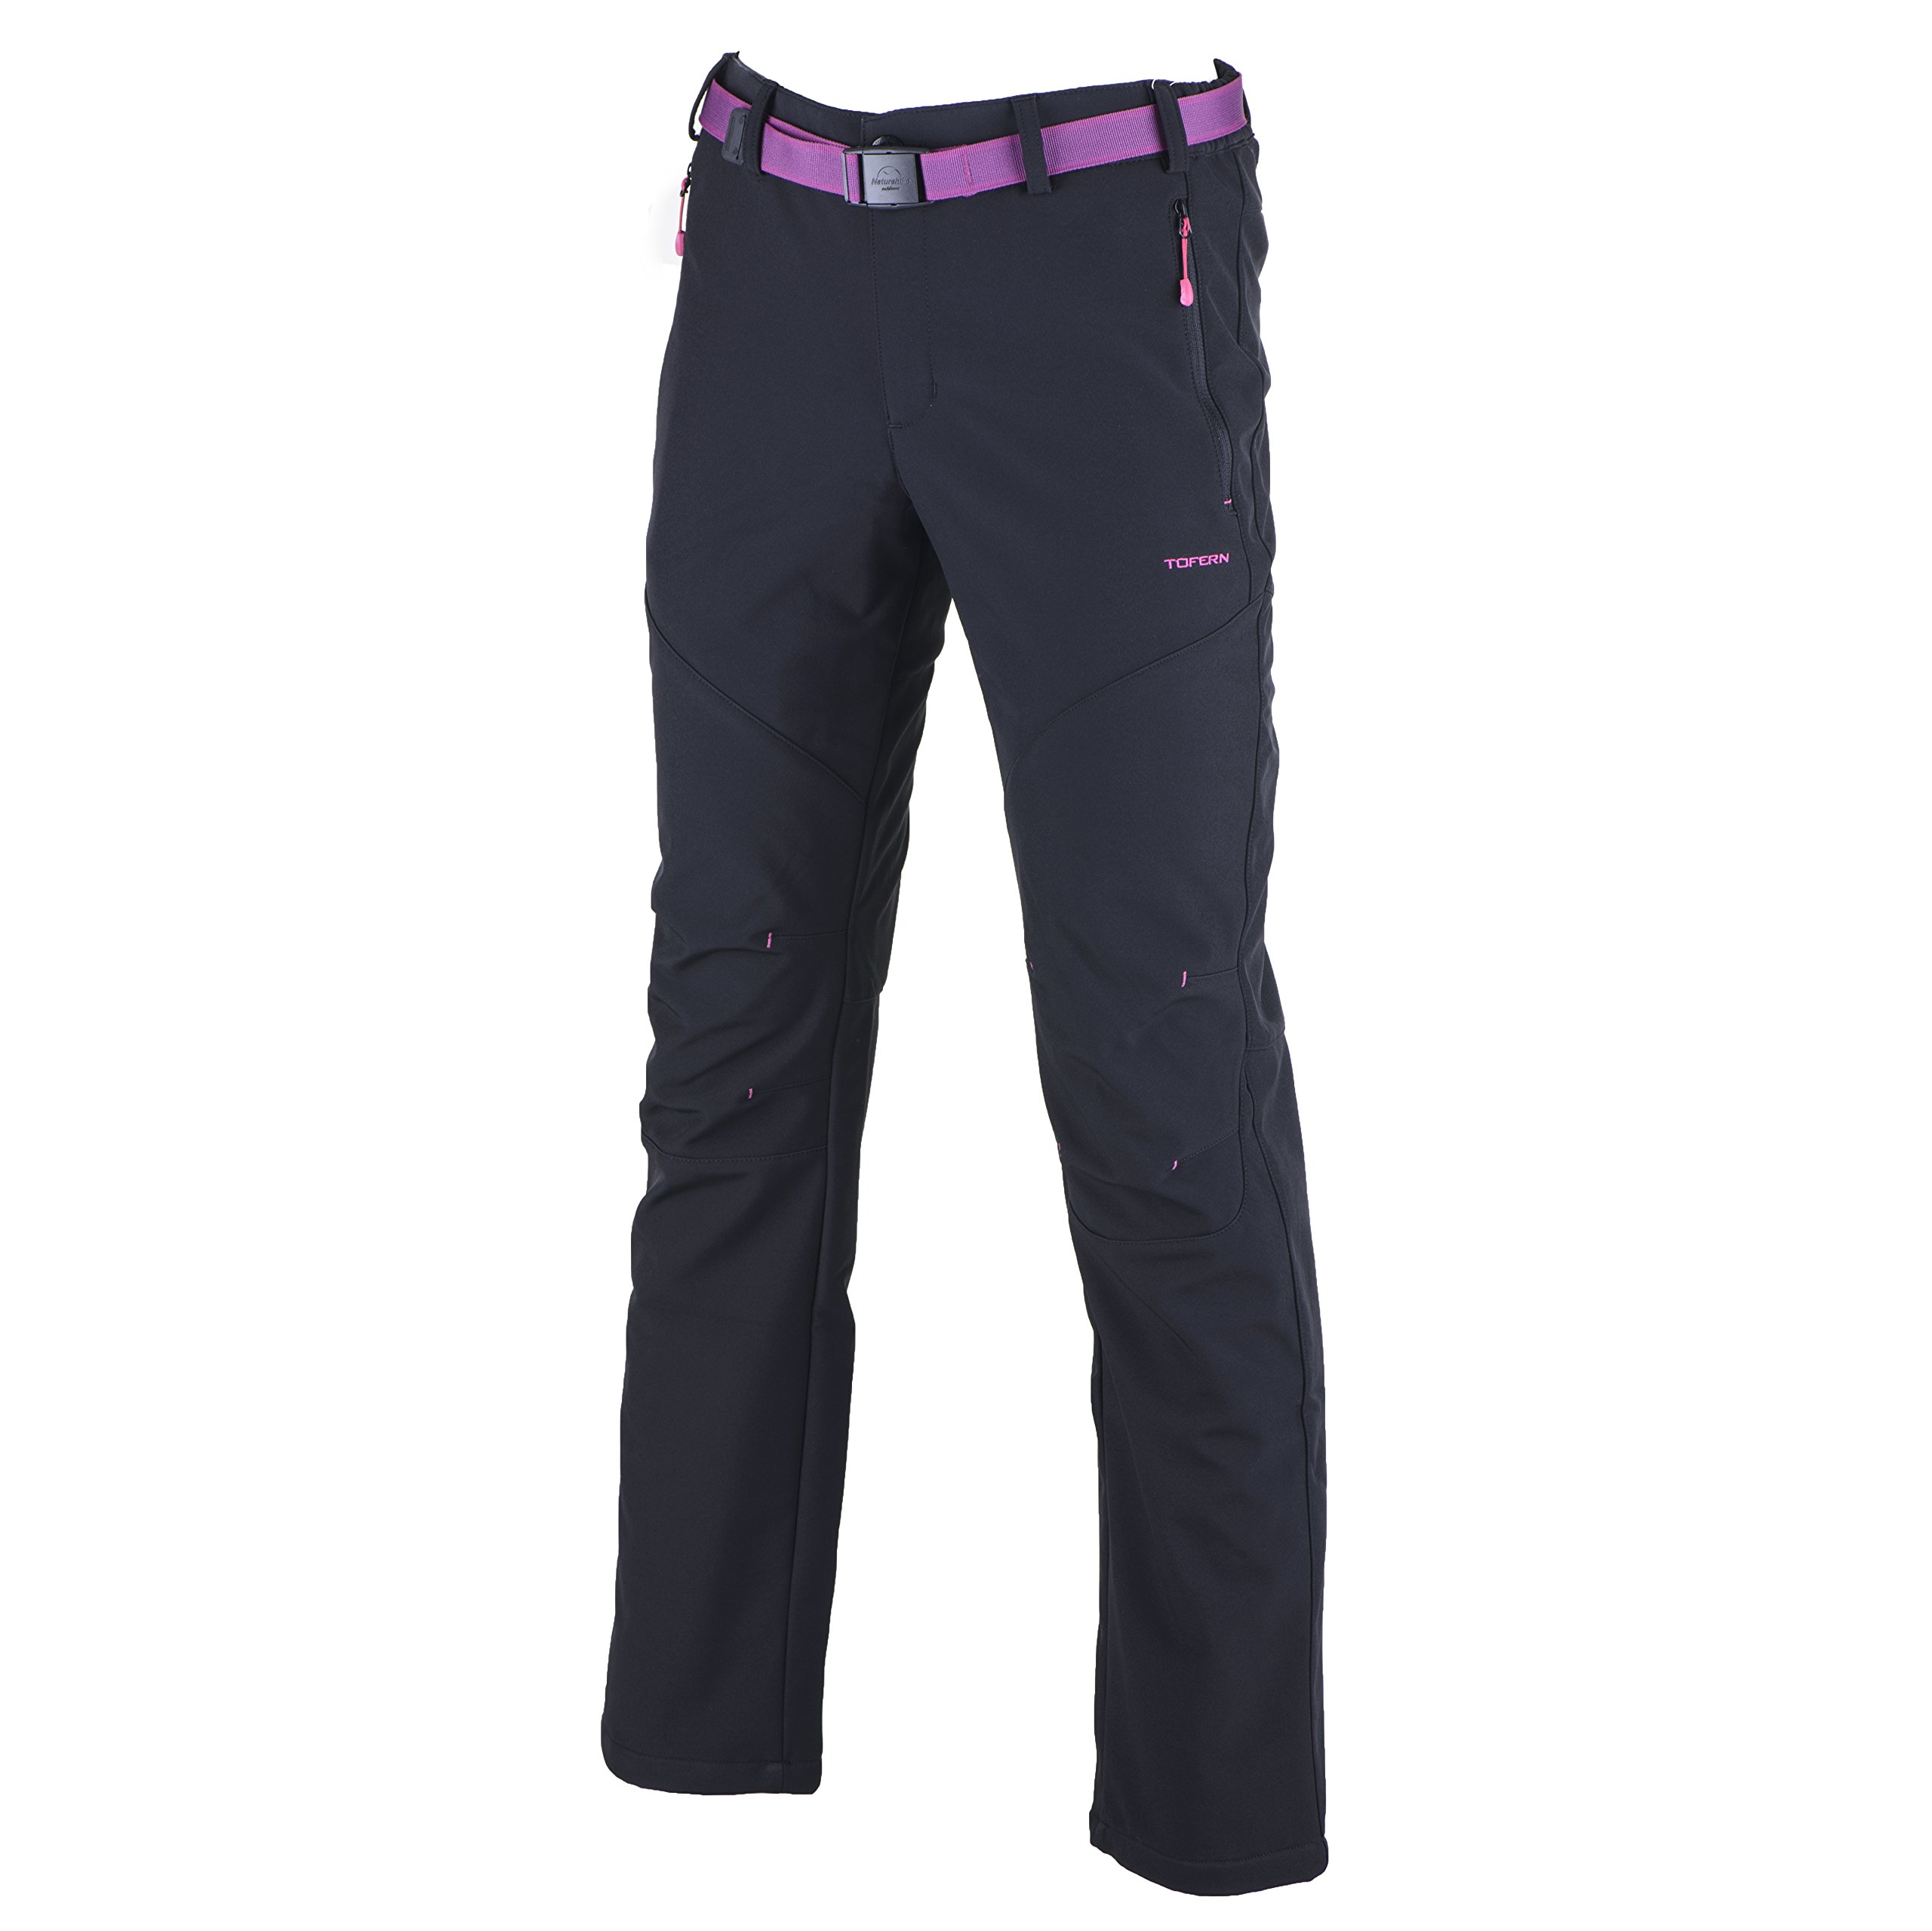 Tofern Womens Winter Warm Breathable Waterproof Windproof Softshell Pants Outdoor Hiking Climbing Camping Cycling Trousers, Black-New US Size L (Lable 2XL)